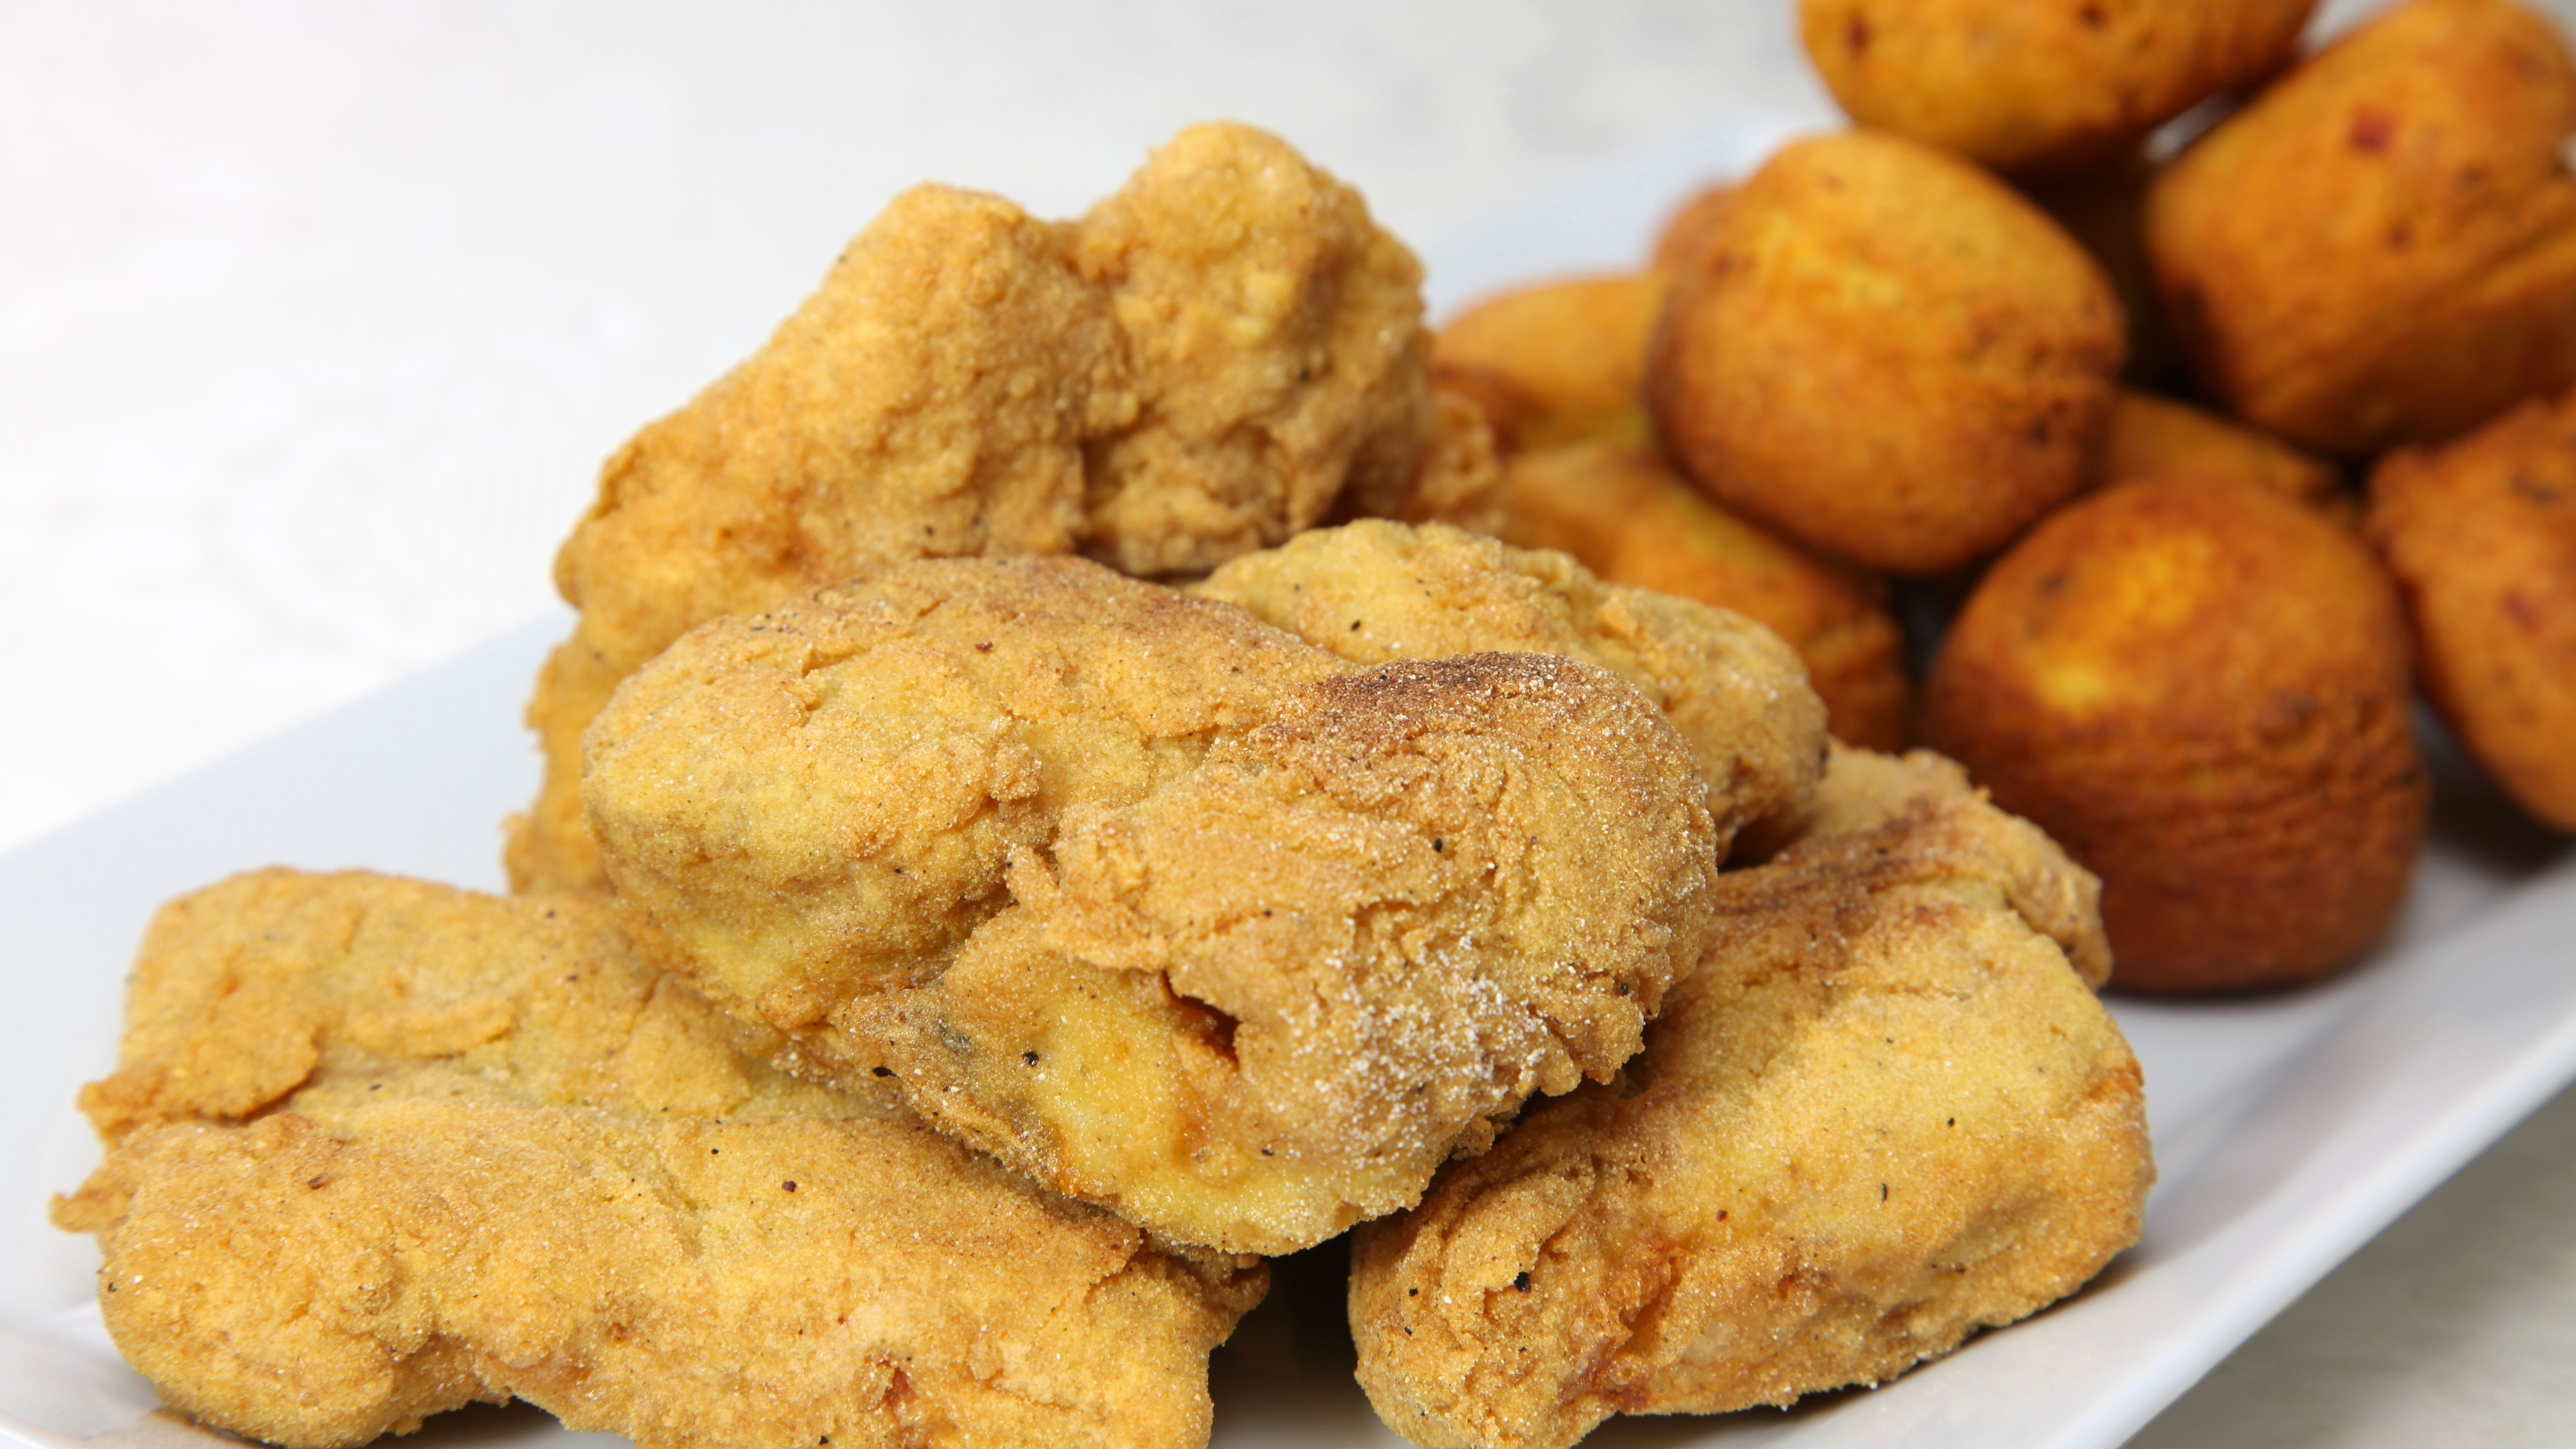 Basic Deep Fried Catfish Fillets With Hush Puppies